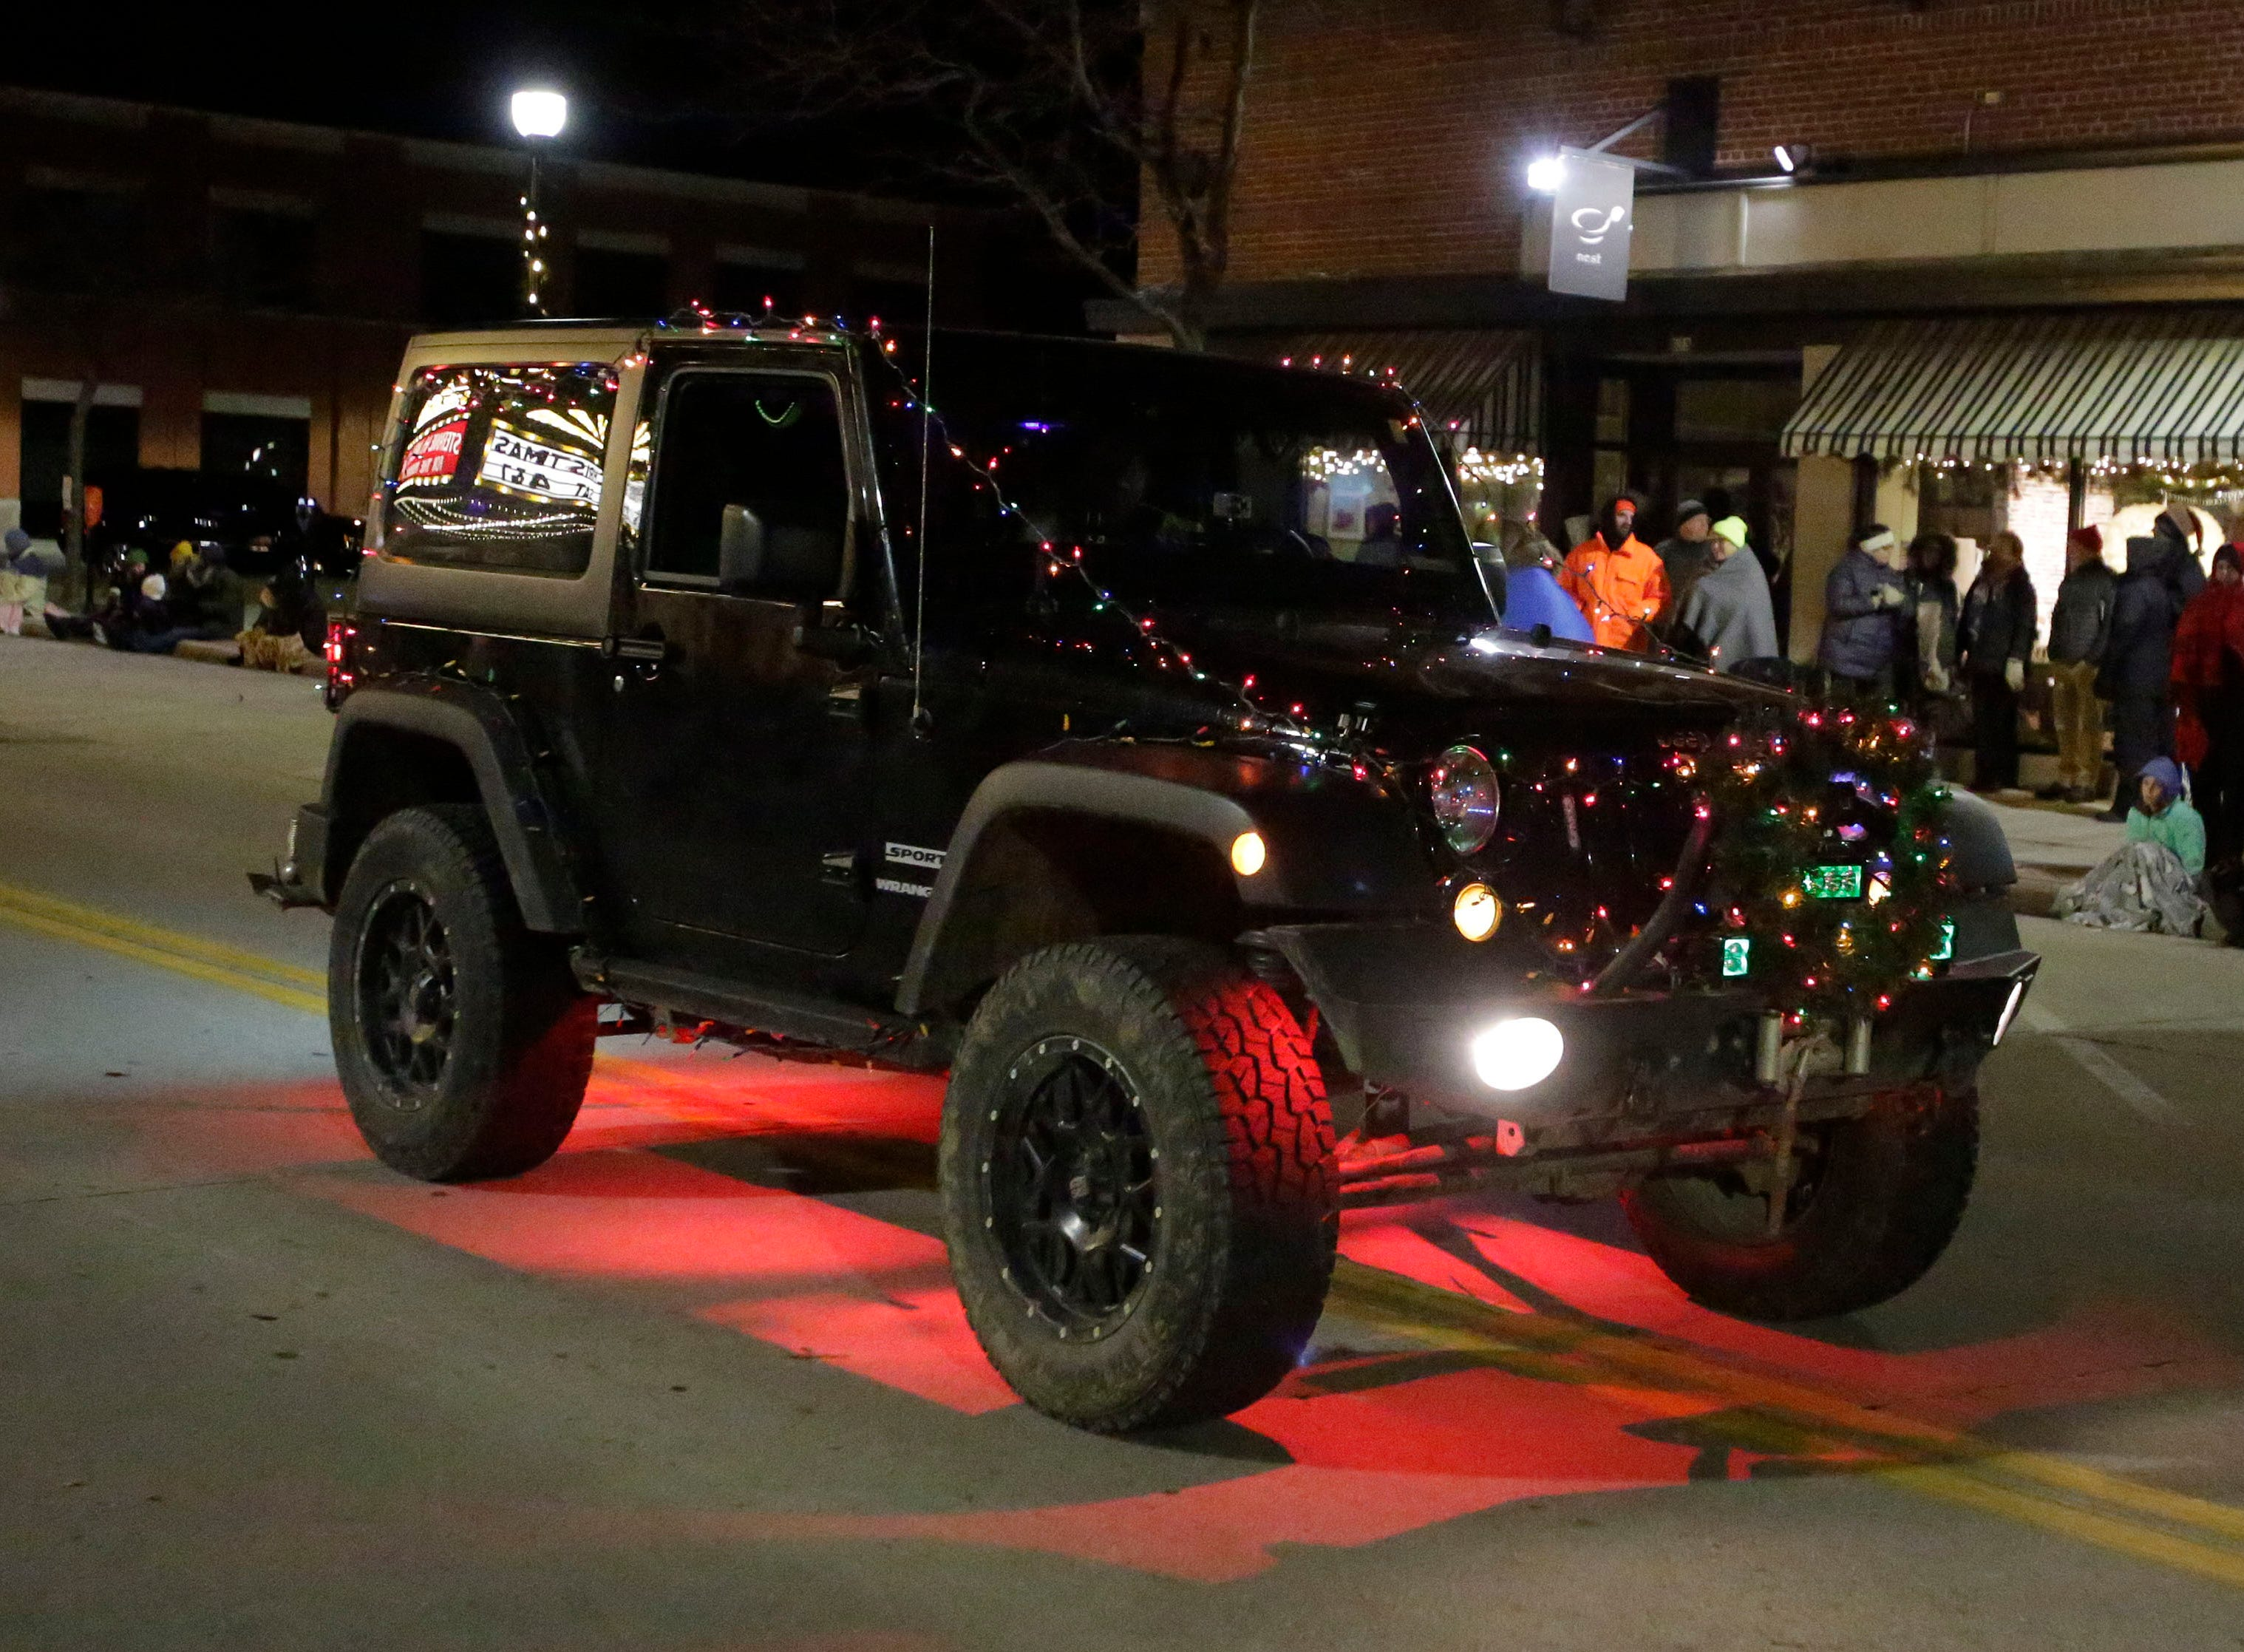 A Jeep glows North 8th Street at the 26th Annual Jaycees Holiday Parade, Sunday, November 25, 2018 in Sheboygan, Wis.